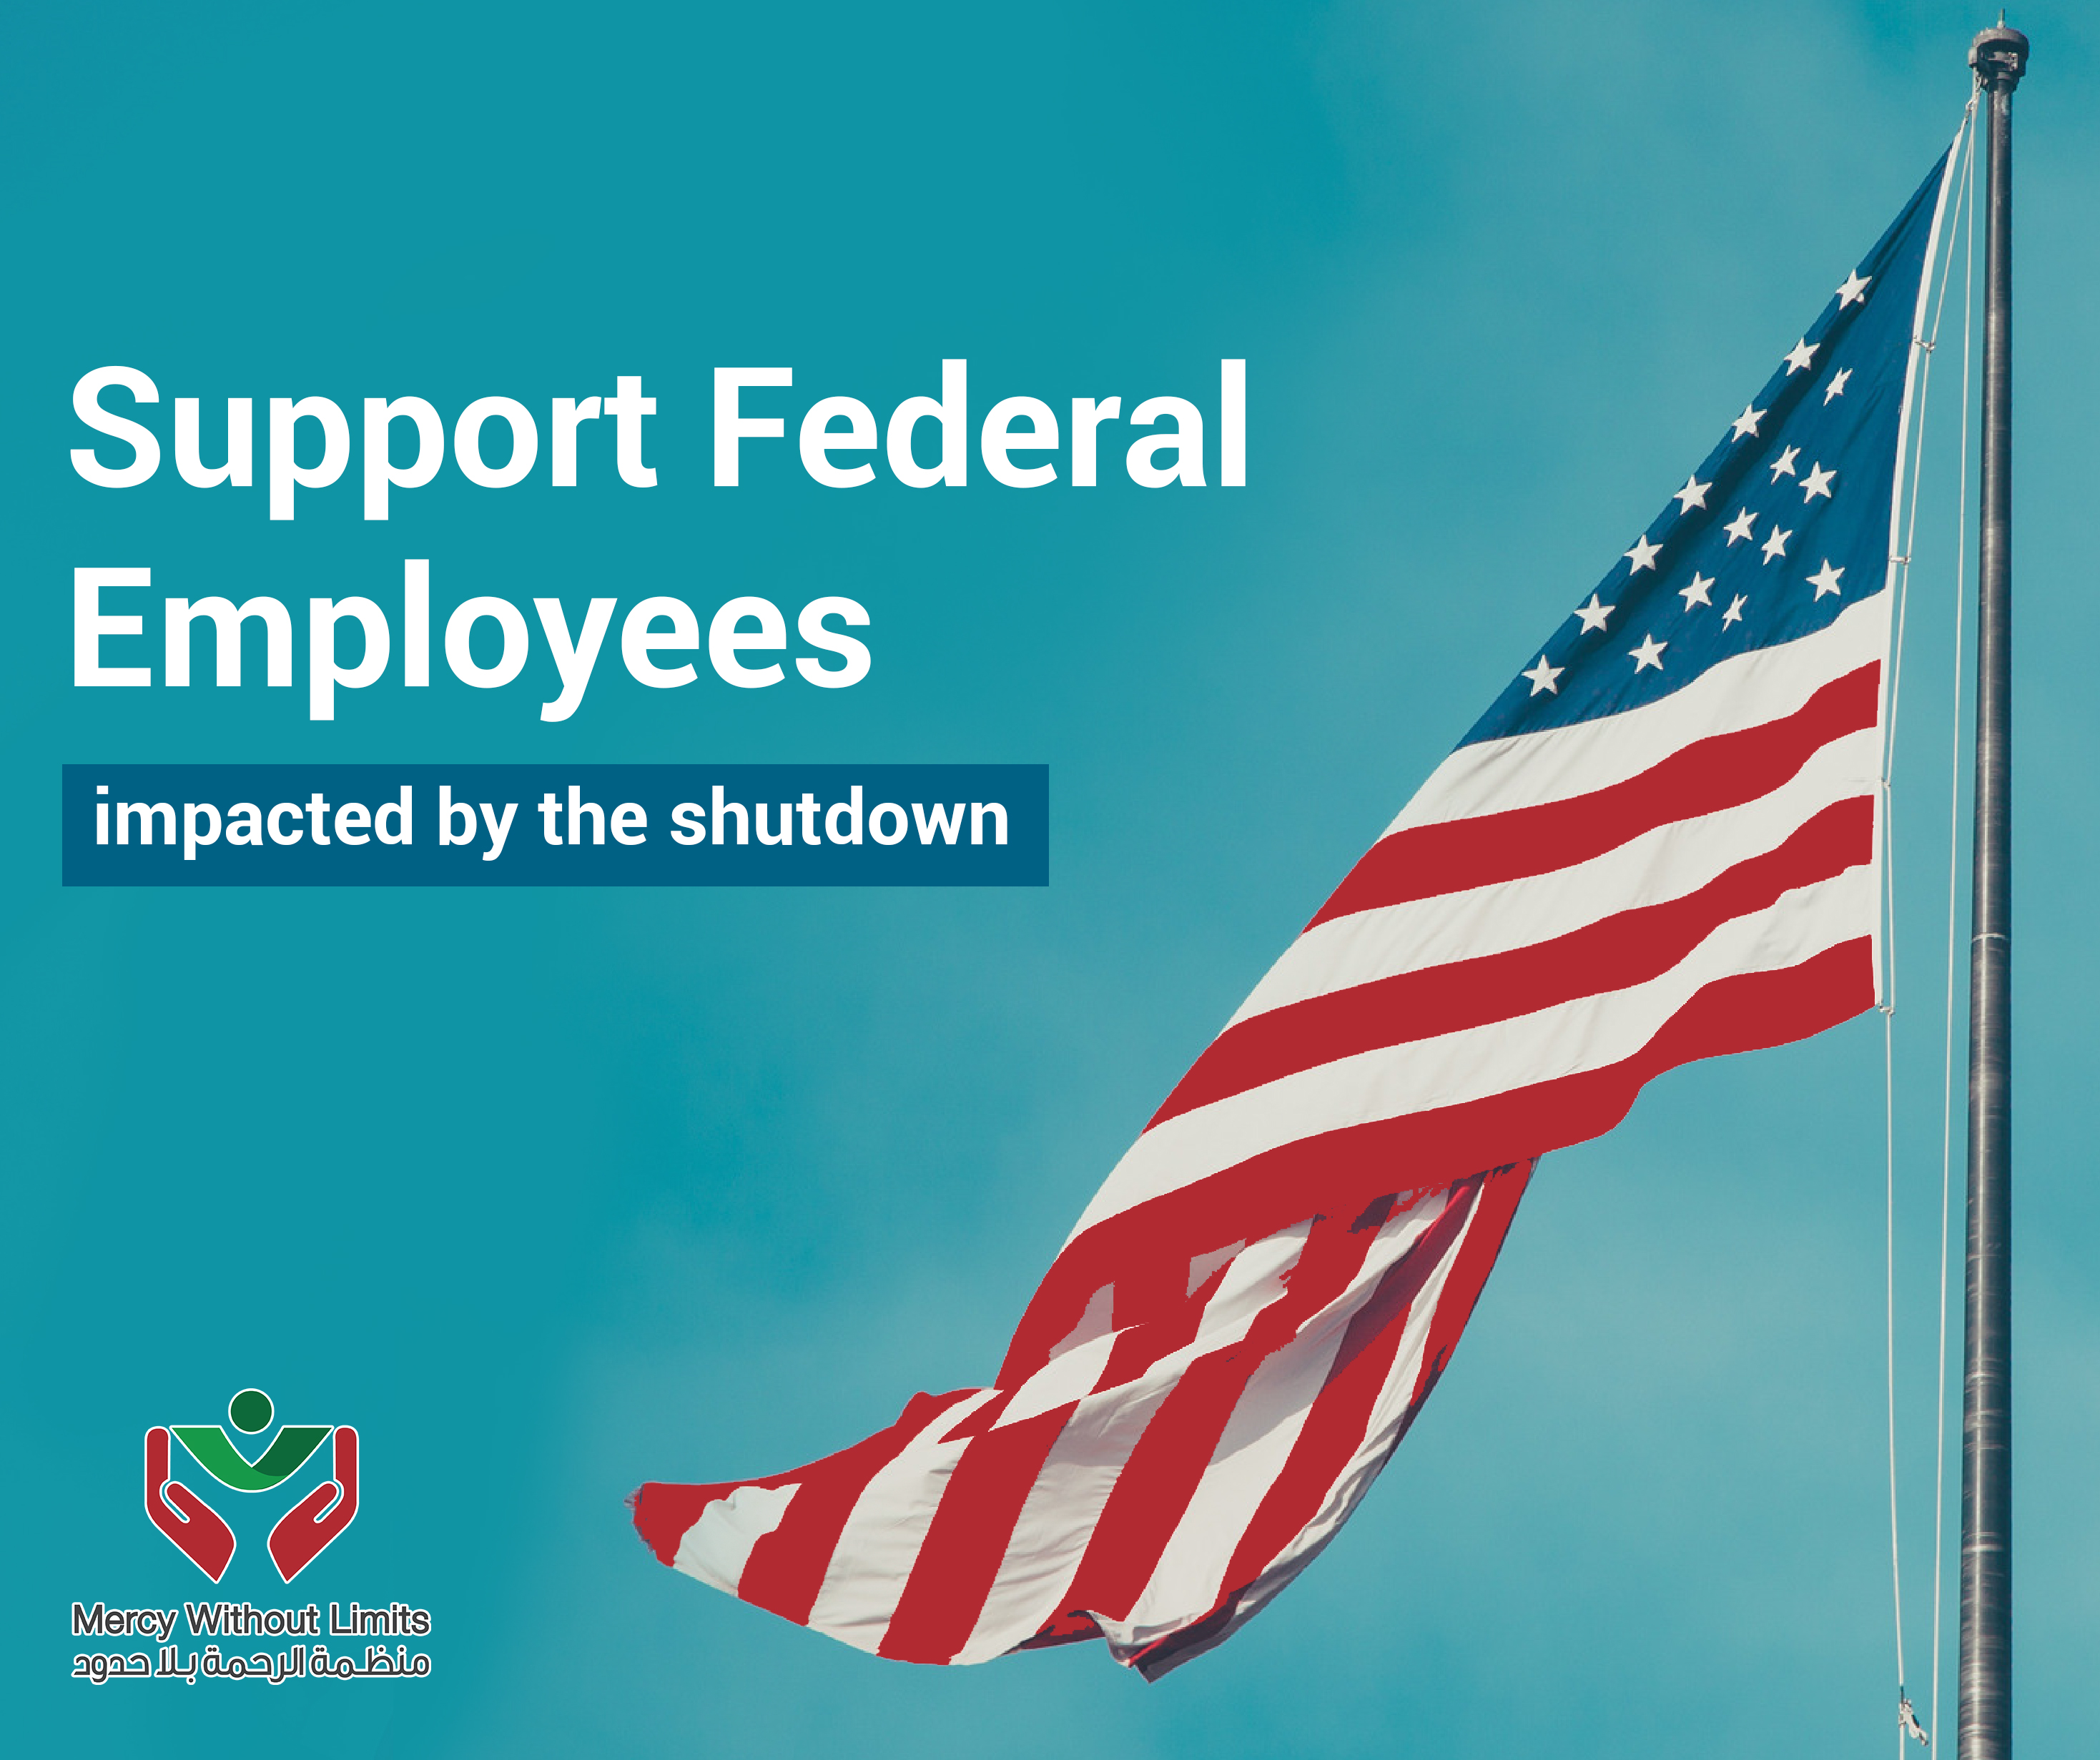 Supporting Federal Employees